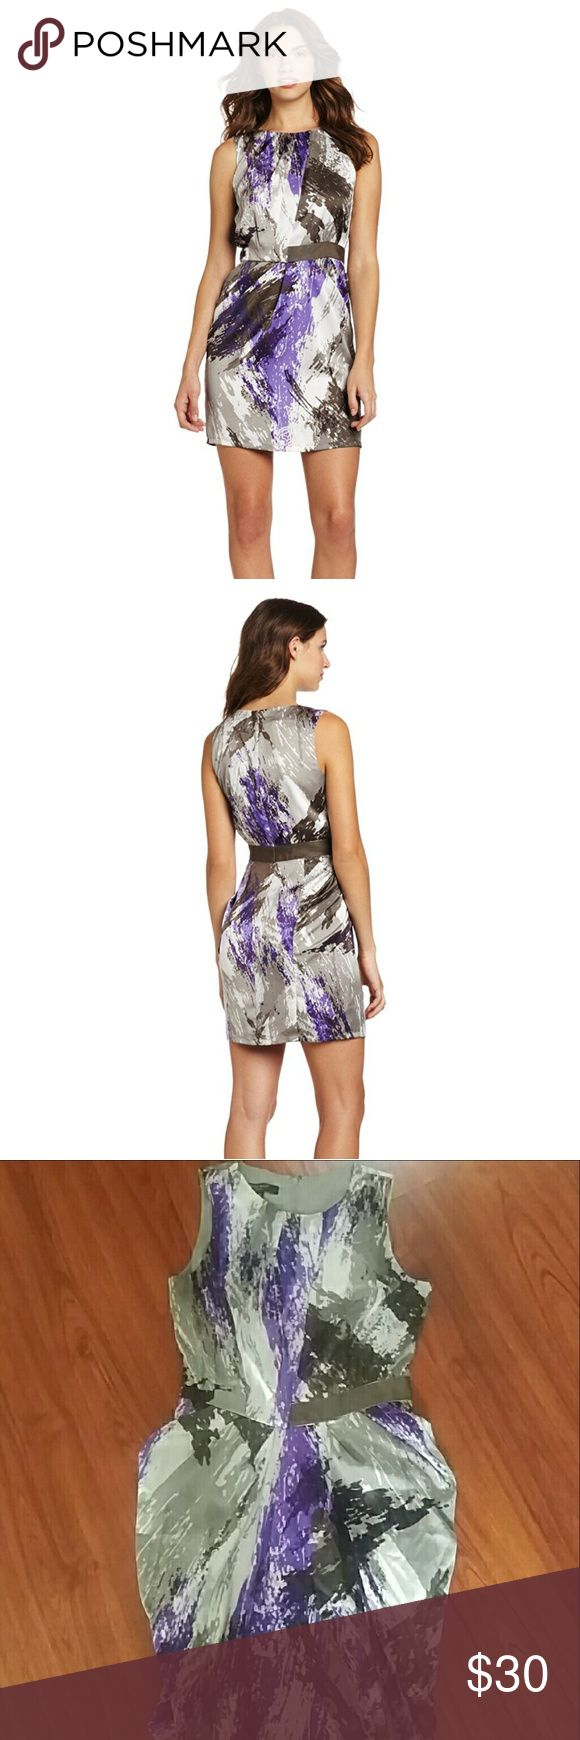 Nine West Painted Brushstrokes Tulip Skirt Dress Nine West Painted Brushstrokes Tulip Skirt Dress, like new size 10. Beautiful date night, girls night out or even cocktail dress! Fits true to size, figure flattering Nine West Dresses